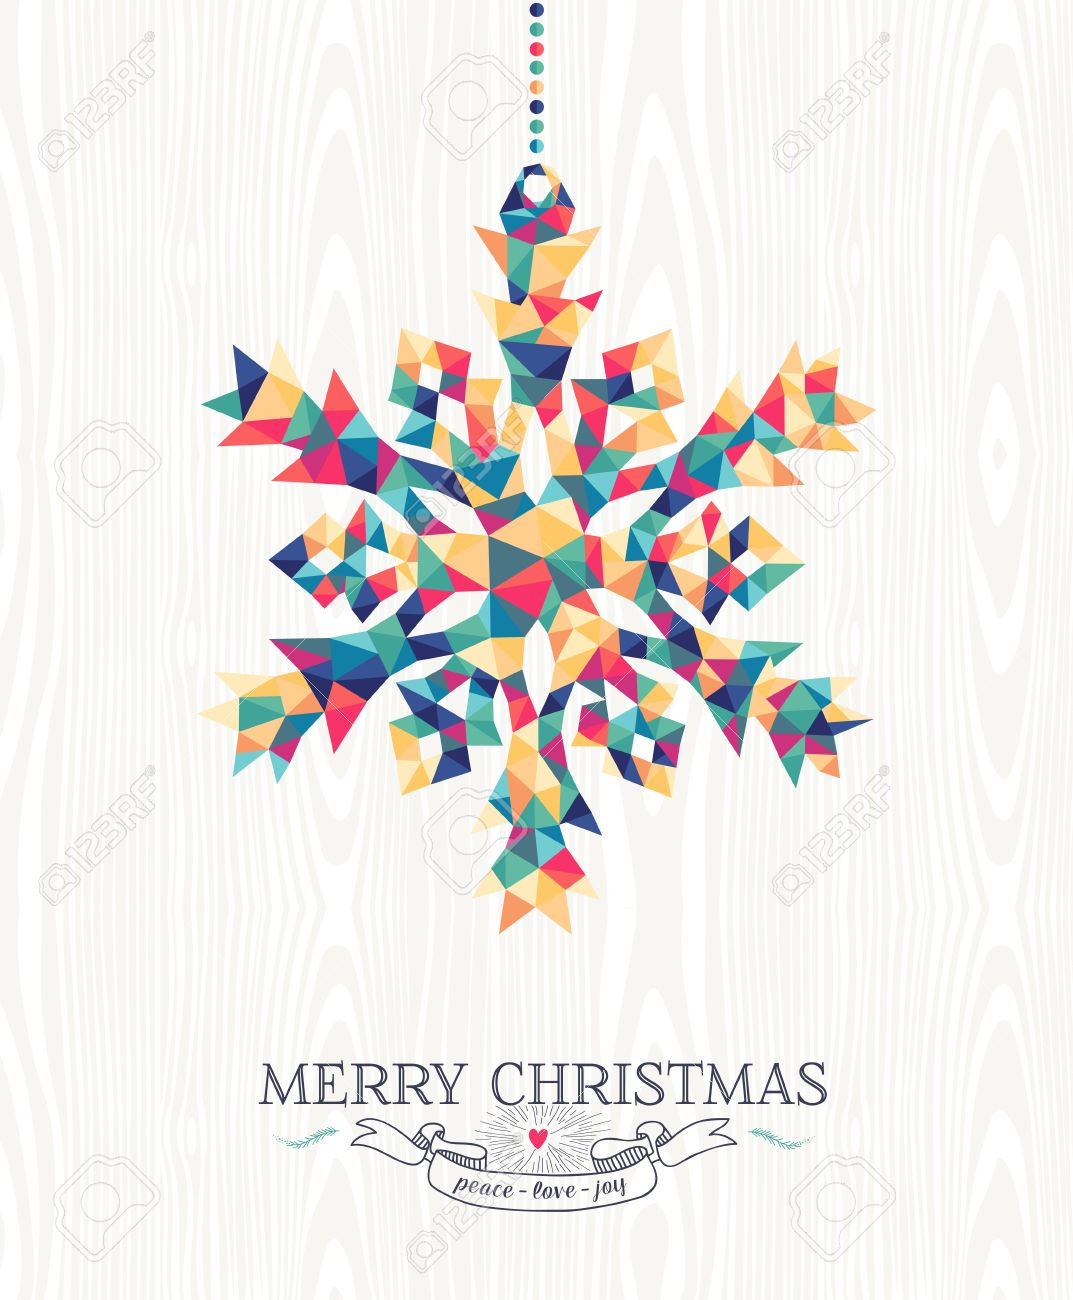 Merry Christmas trendy hipster snowflake made with colorful geometry triangles on wood background. Ideal for holiday greeting card, xmas poster or web template. EPS10 vector. - 45989061